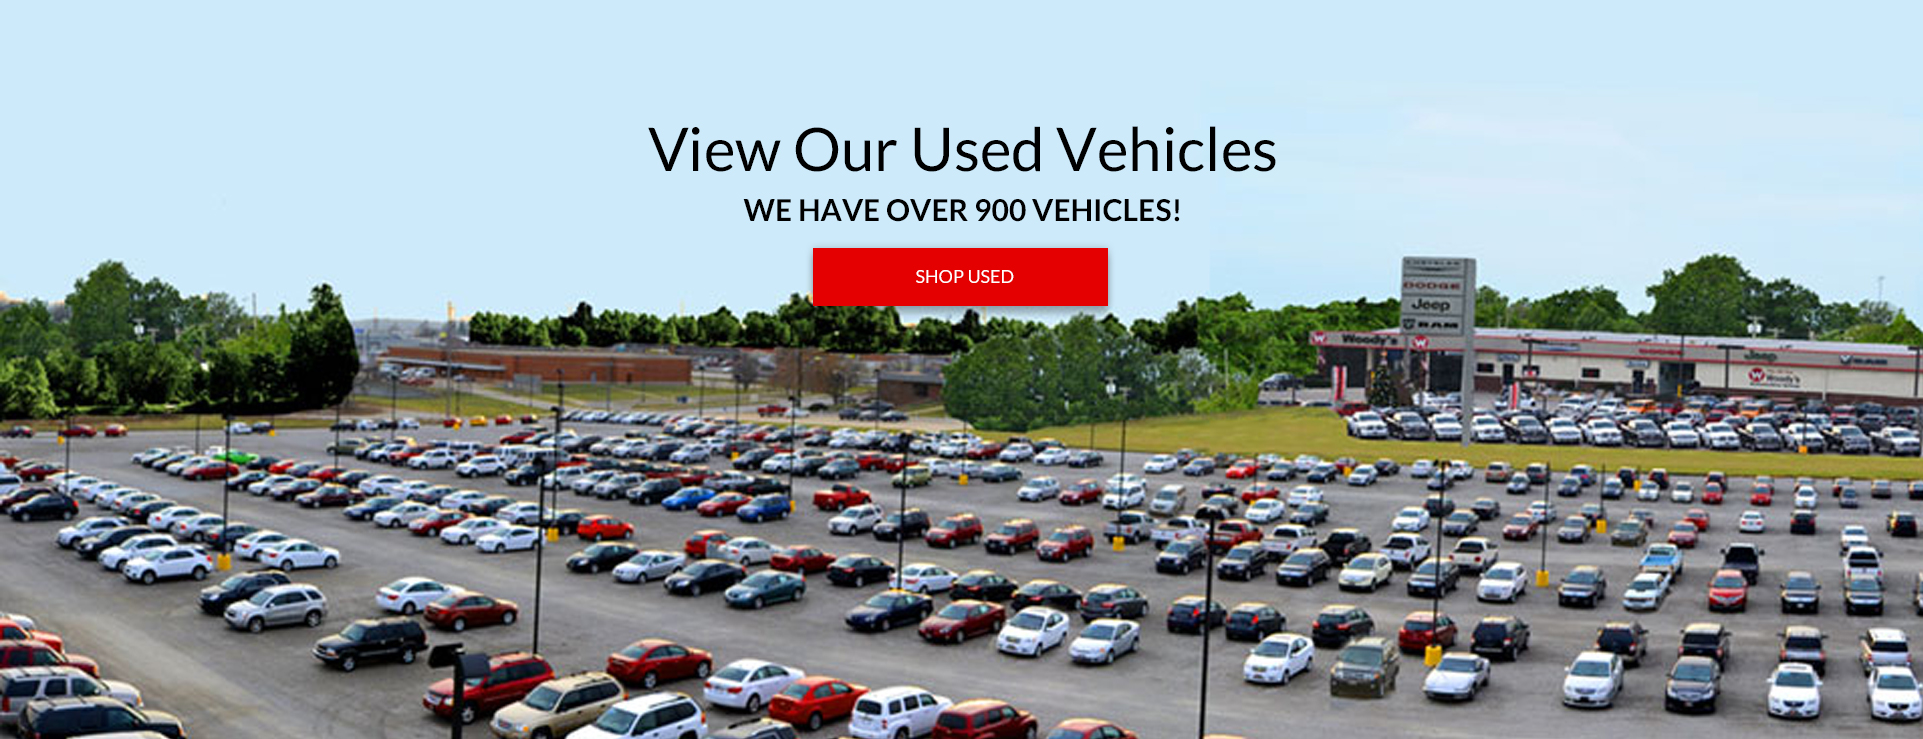 Woody S Automotive Group Chrysler Dodge Ram Jeep Dealers Kansas